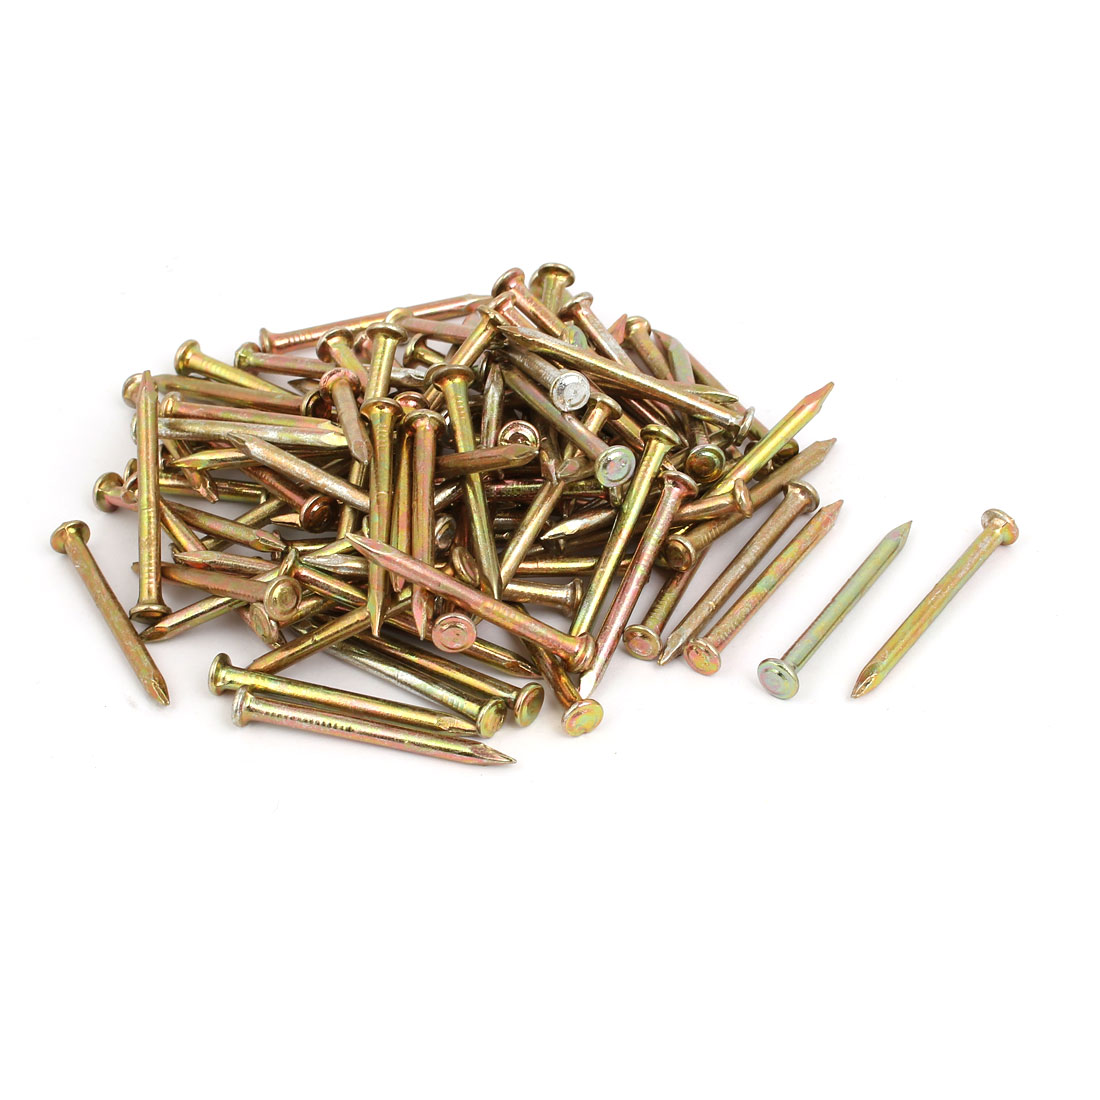 100pcs 40mm Length Steel Point Tip Cement Nail Bronze Tone